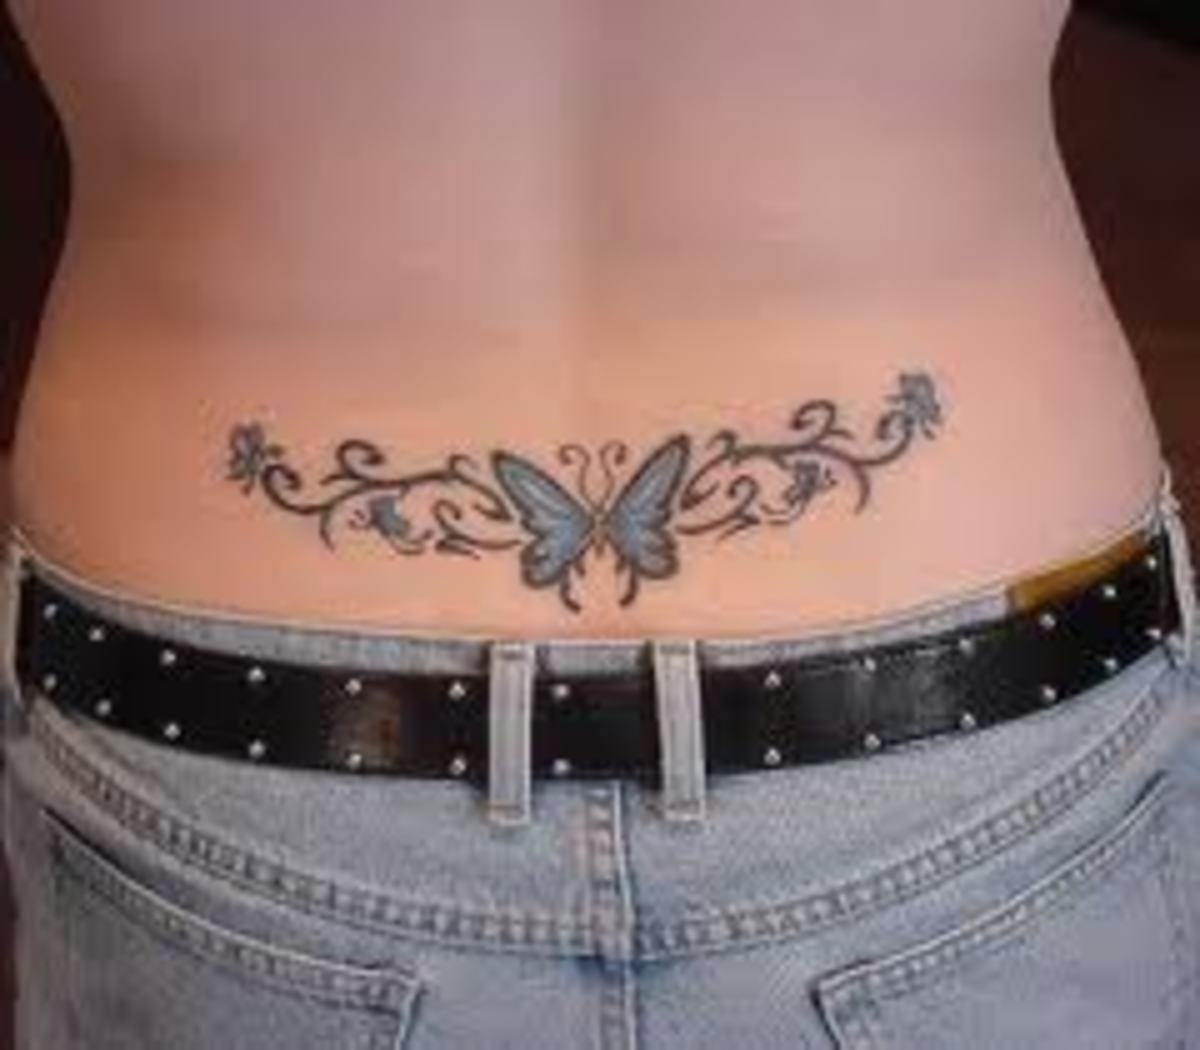 Beautiful art surrounds this butterfly lower back tattoo